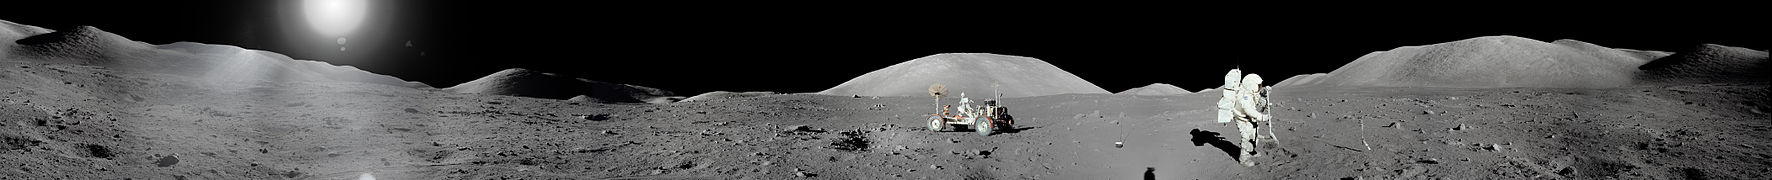 Apollo 17 Moon Panorama.jpg